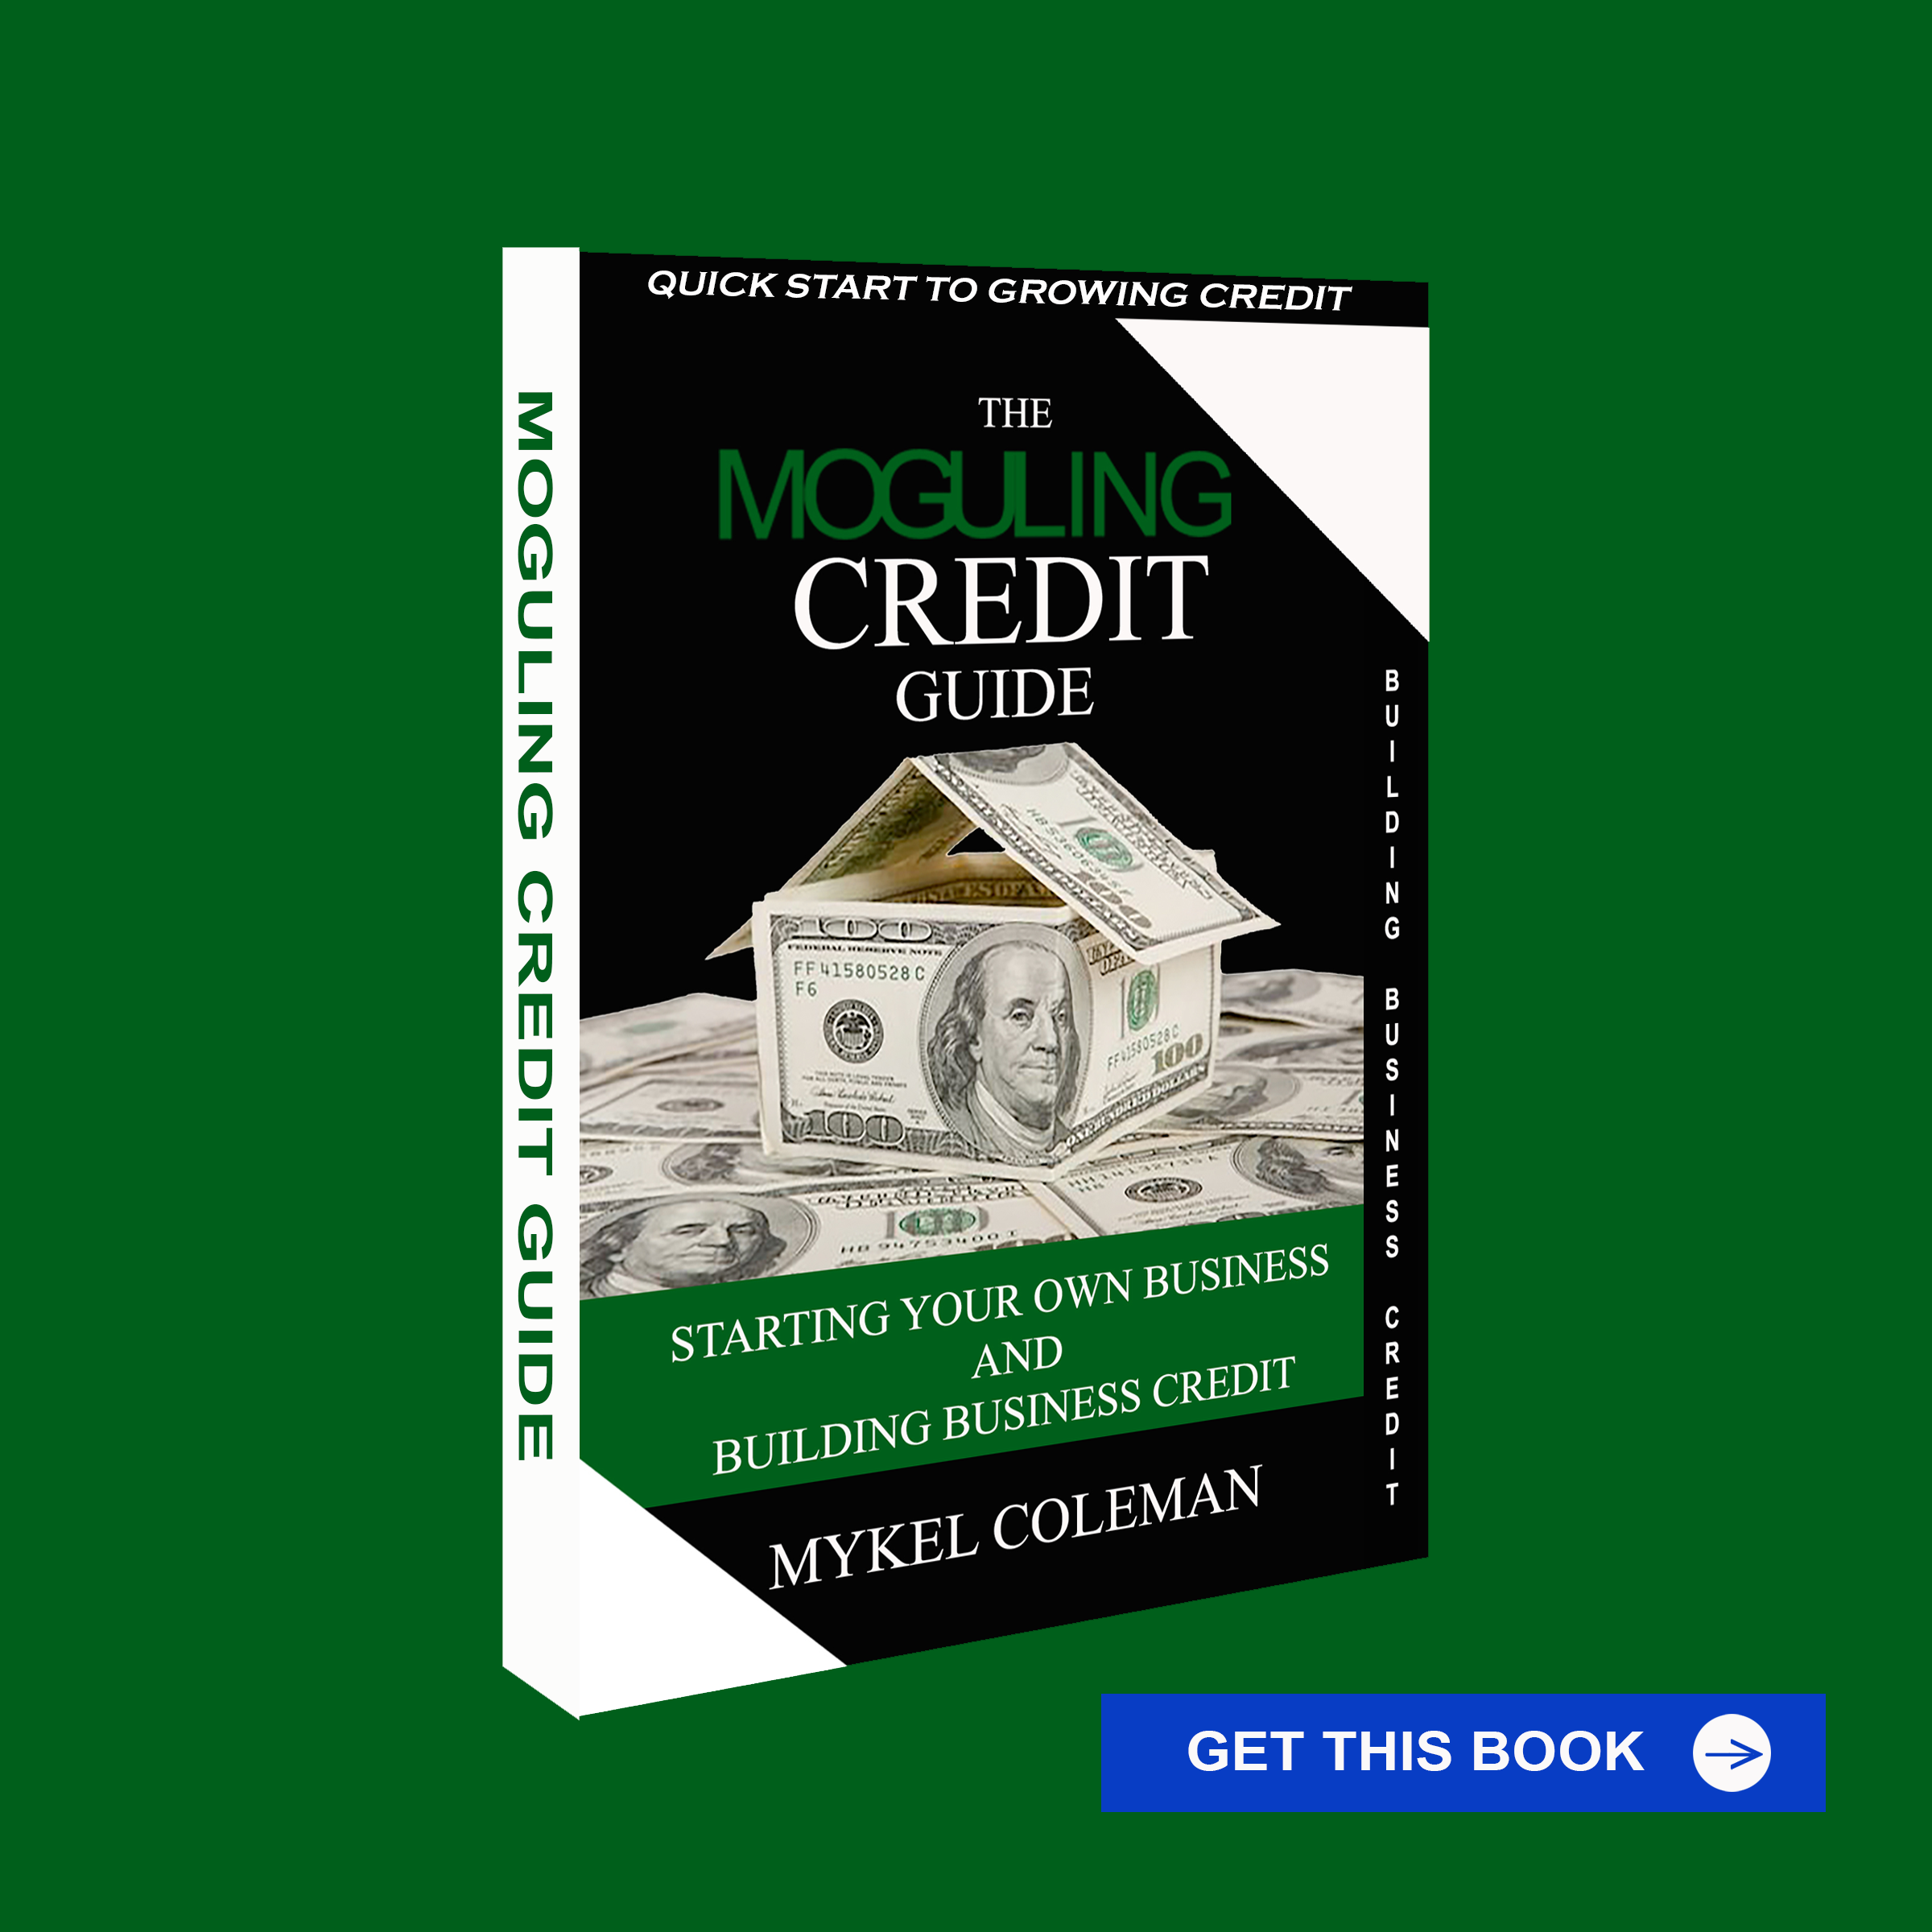 Moguling Credit Guide Book Cover Resized